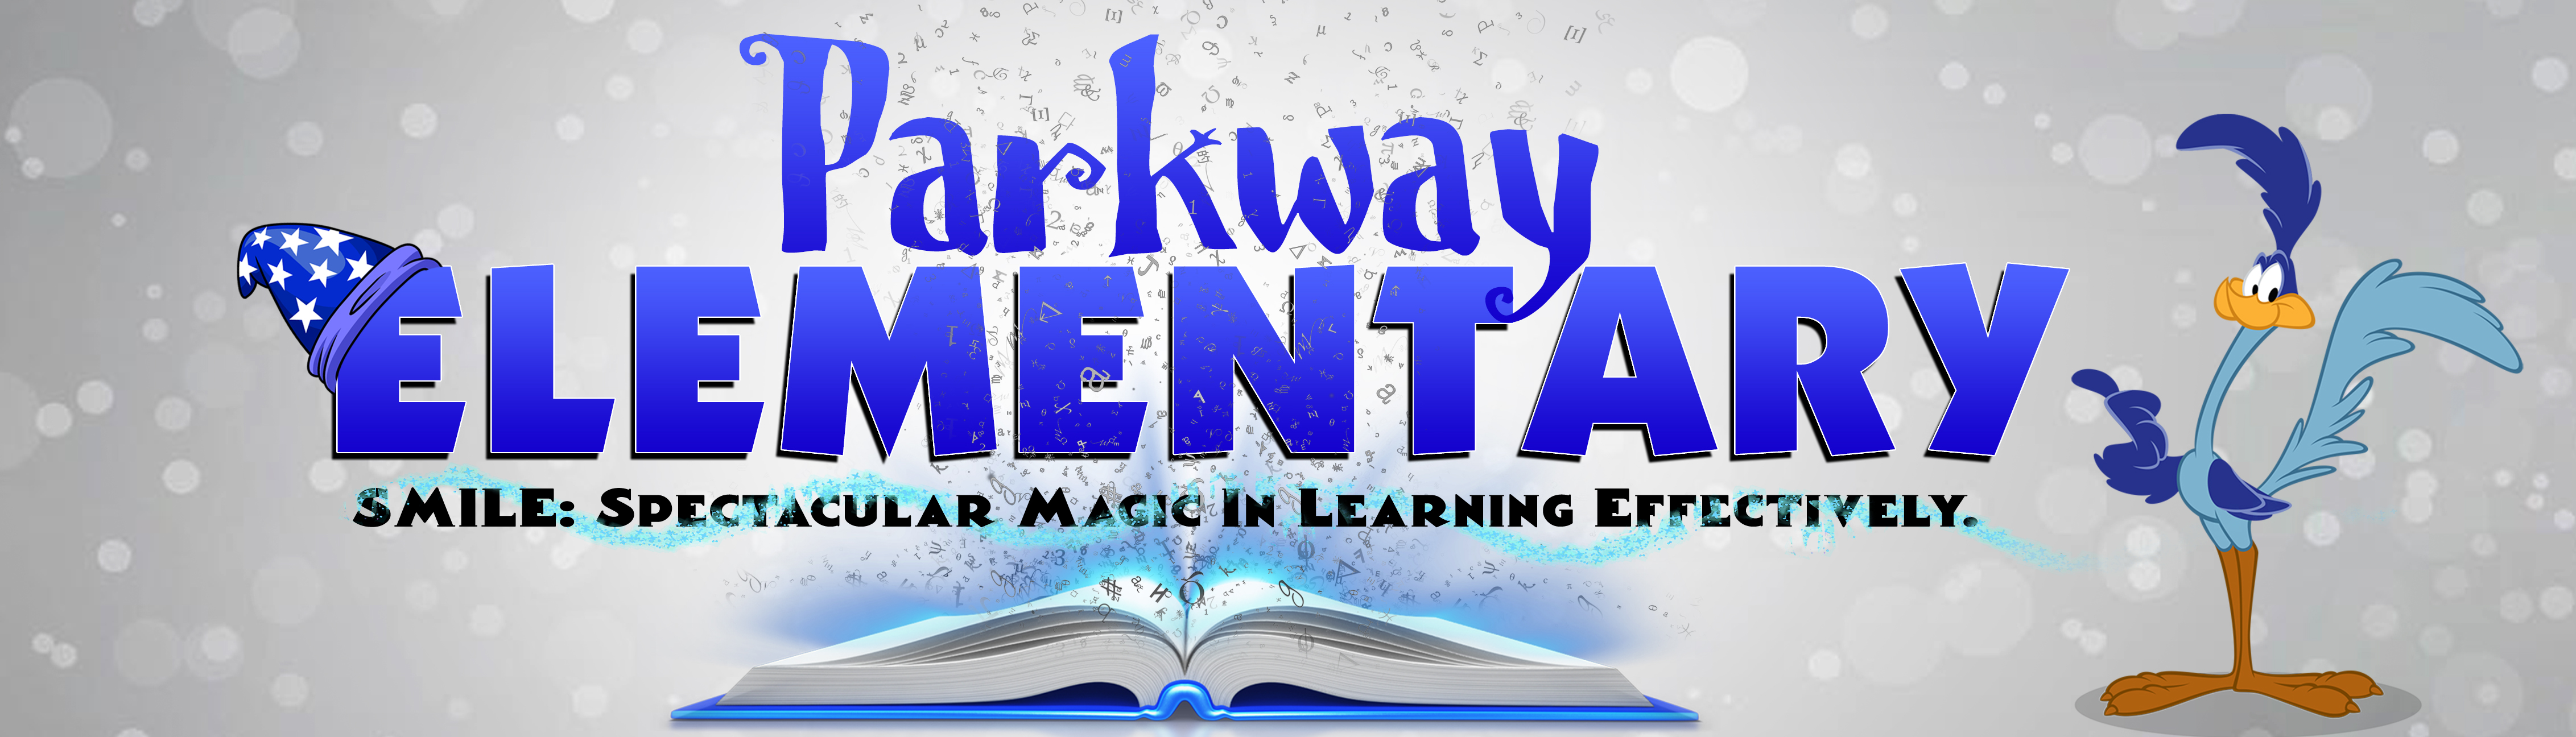 Parkway Elementary